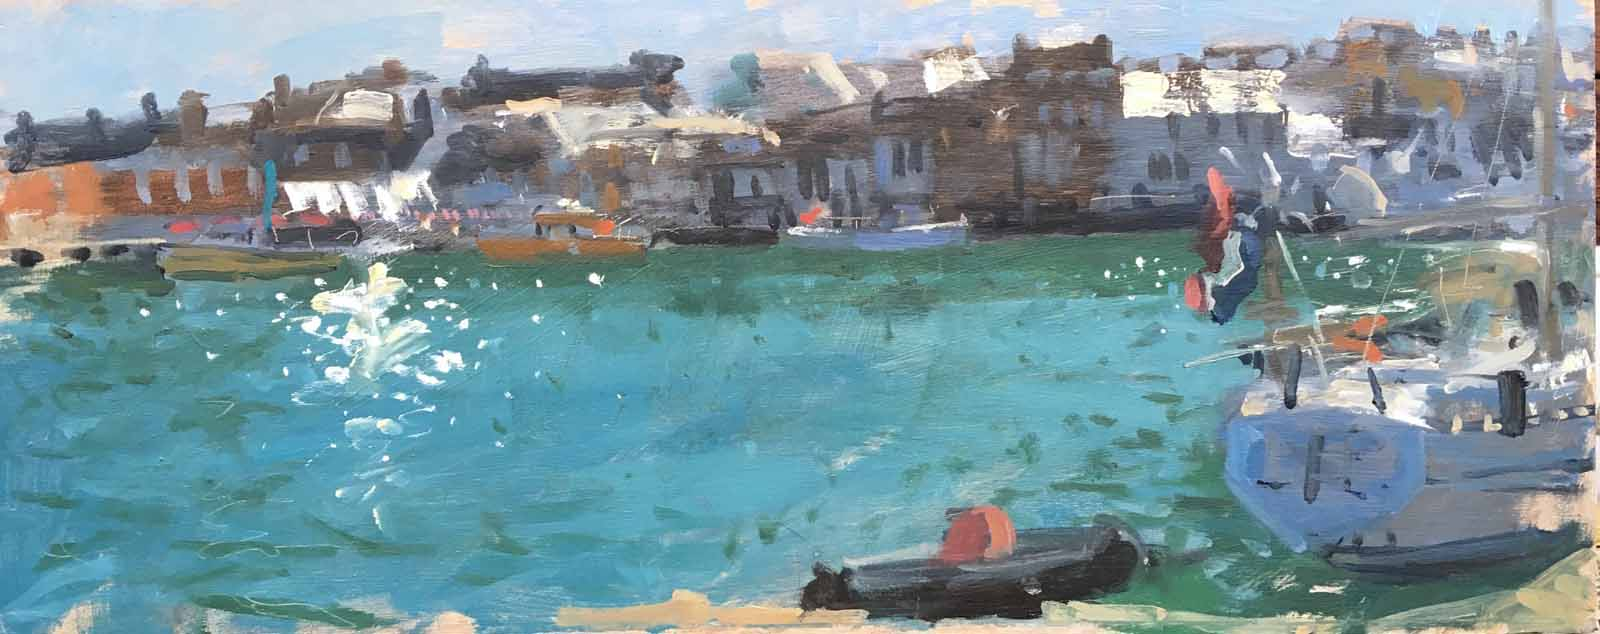 Heatwave, Weymouth Old Harbour